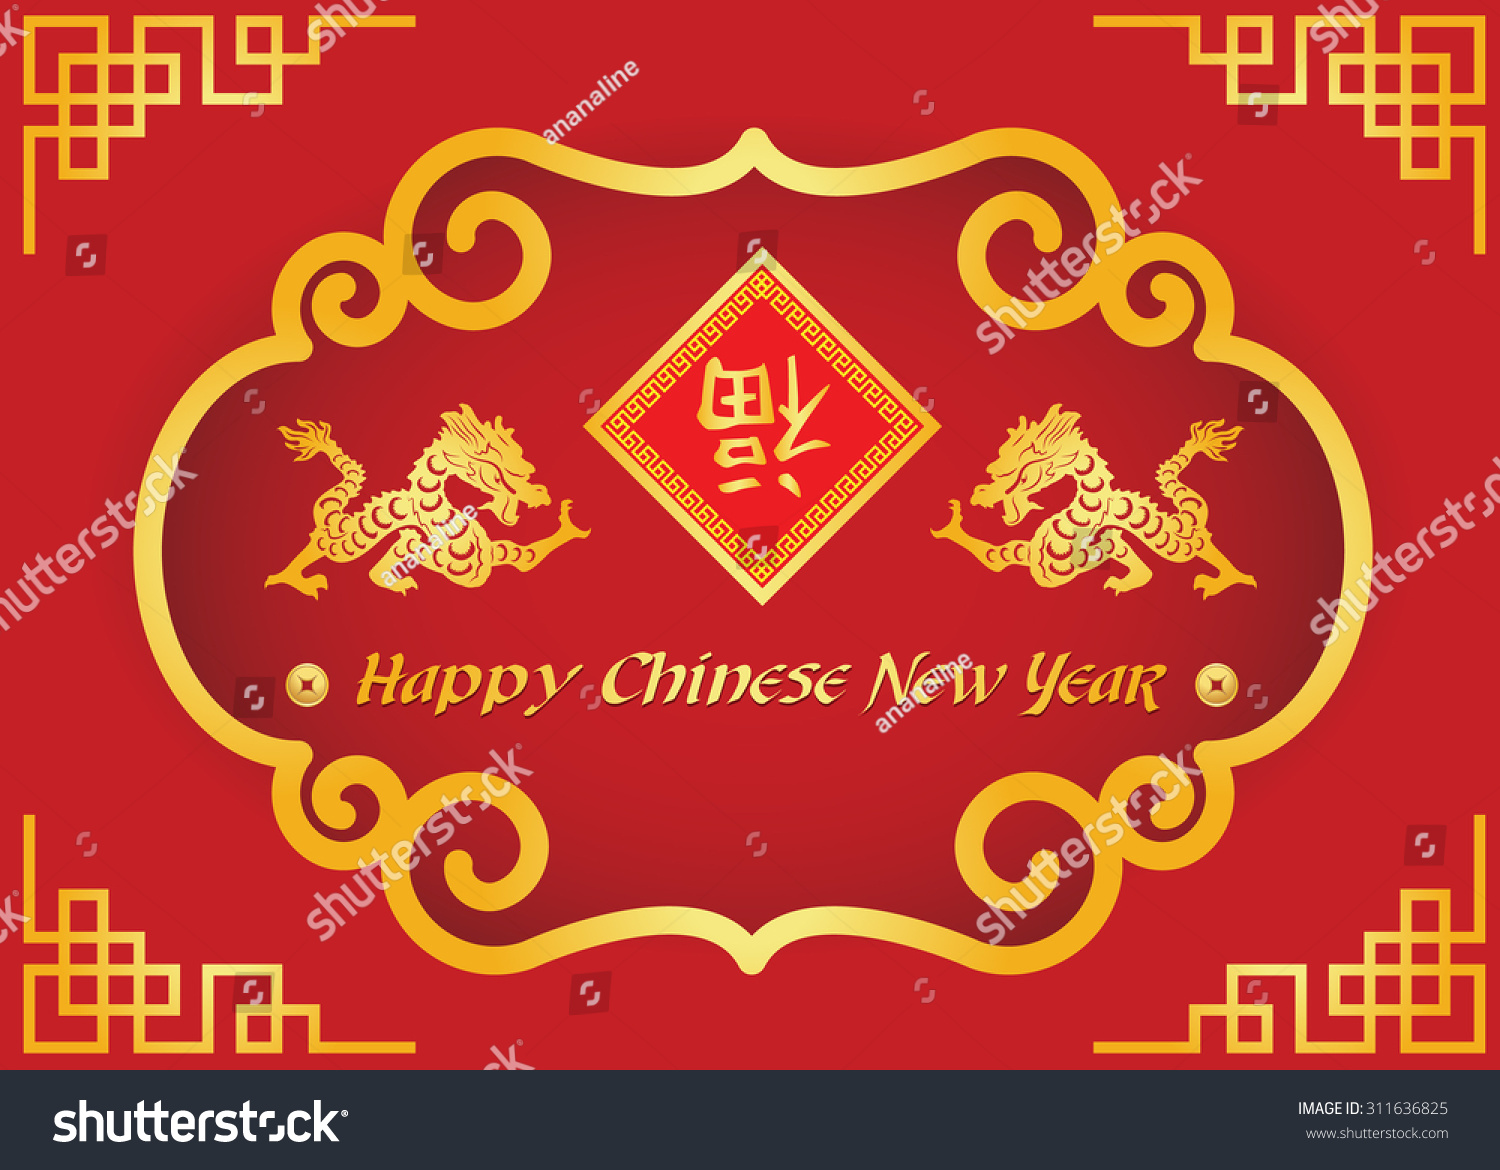 Happy chinese new year card gold stock vector 311636825 shutterstock happy chinese new year card is gold dragon and chiness word mean happness kristyandbryce Choice Image